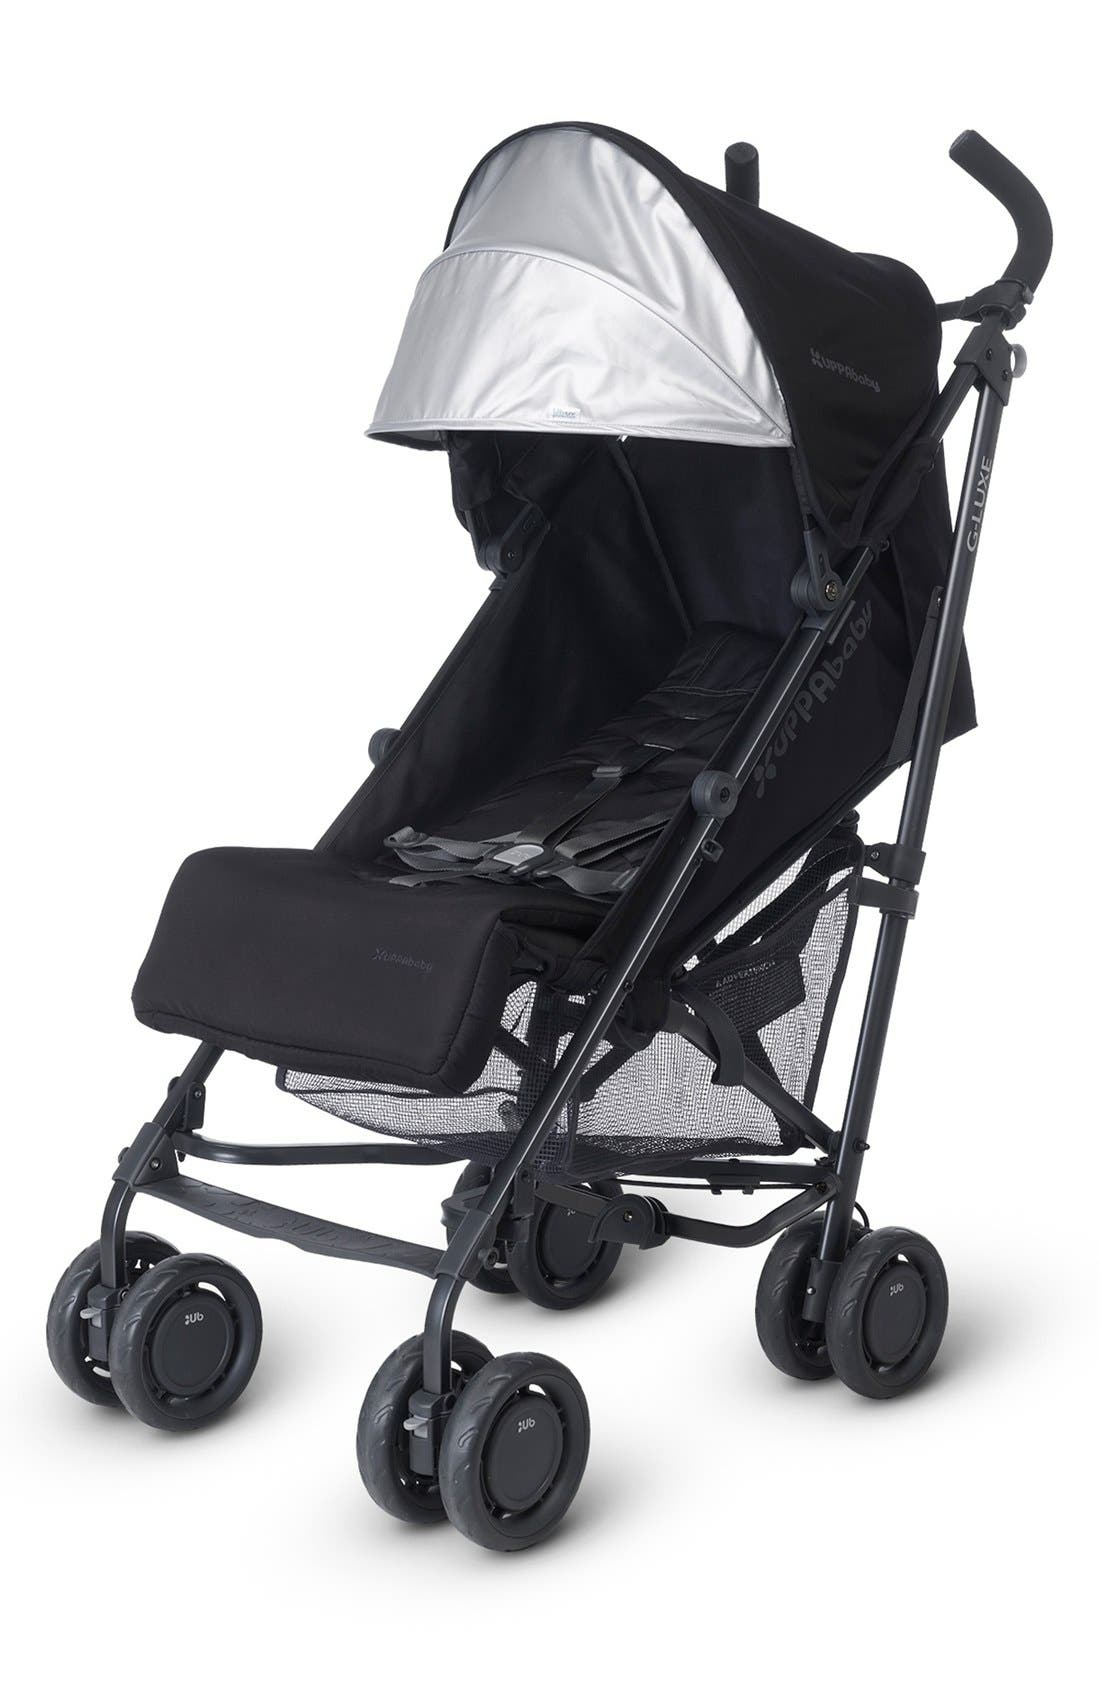 G-LUXE - Black Frame Reclining Umbrella Stroller,                             Alternate thumbnail 6, color,                             Jake Black/ Carbon